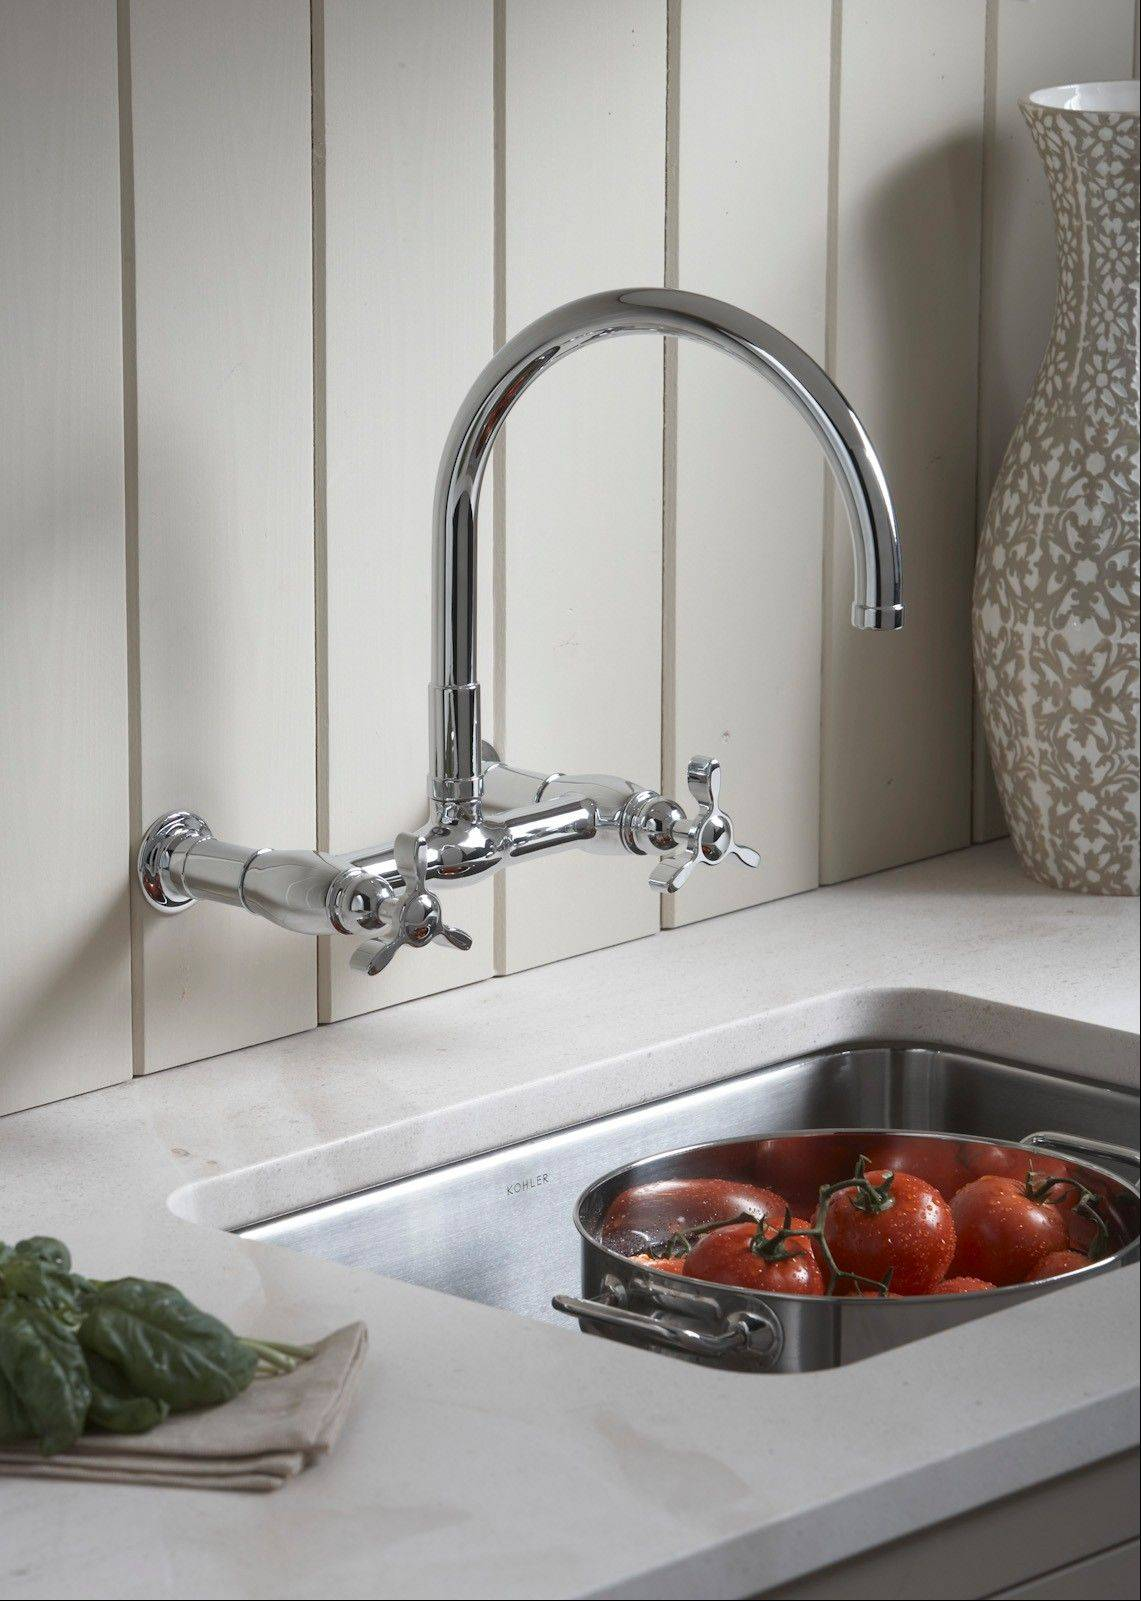 New bridge faucets are a modern take off the original design, and can be wall mounted or deck mounted right on the sink.